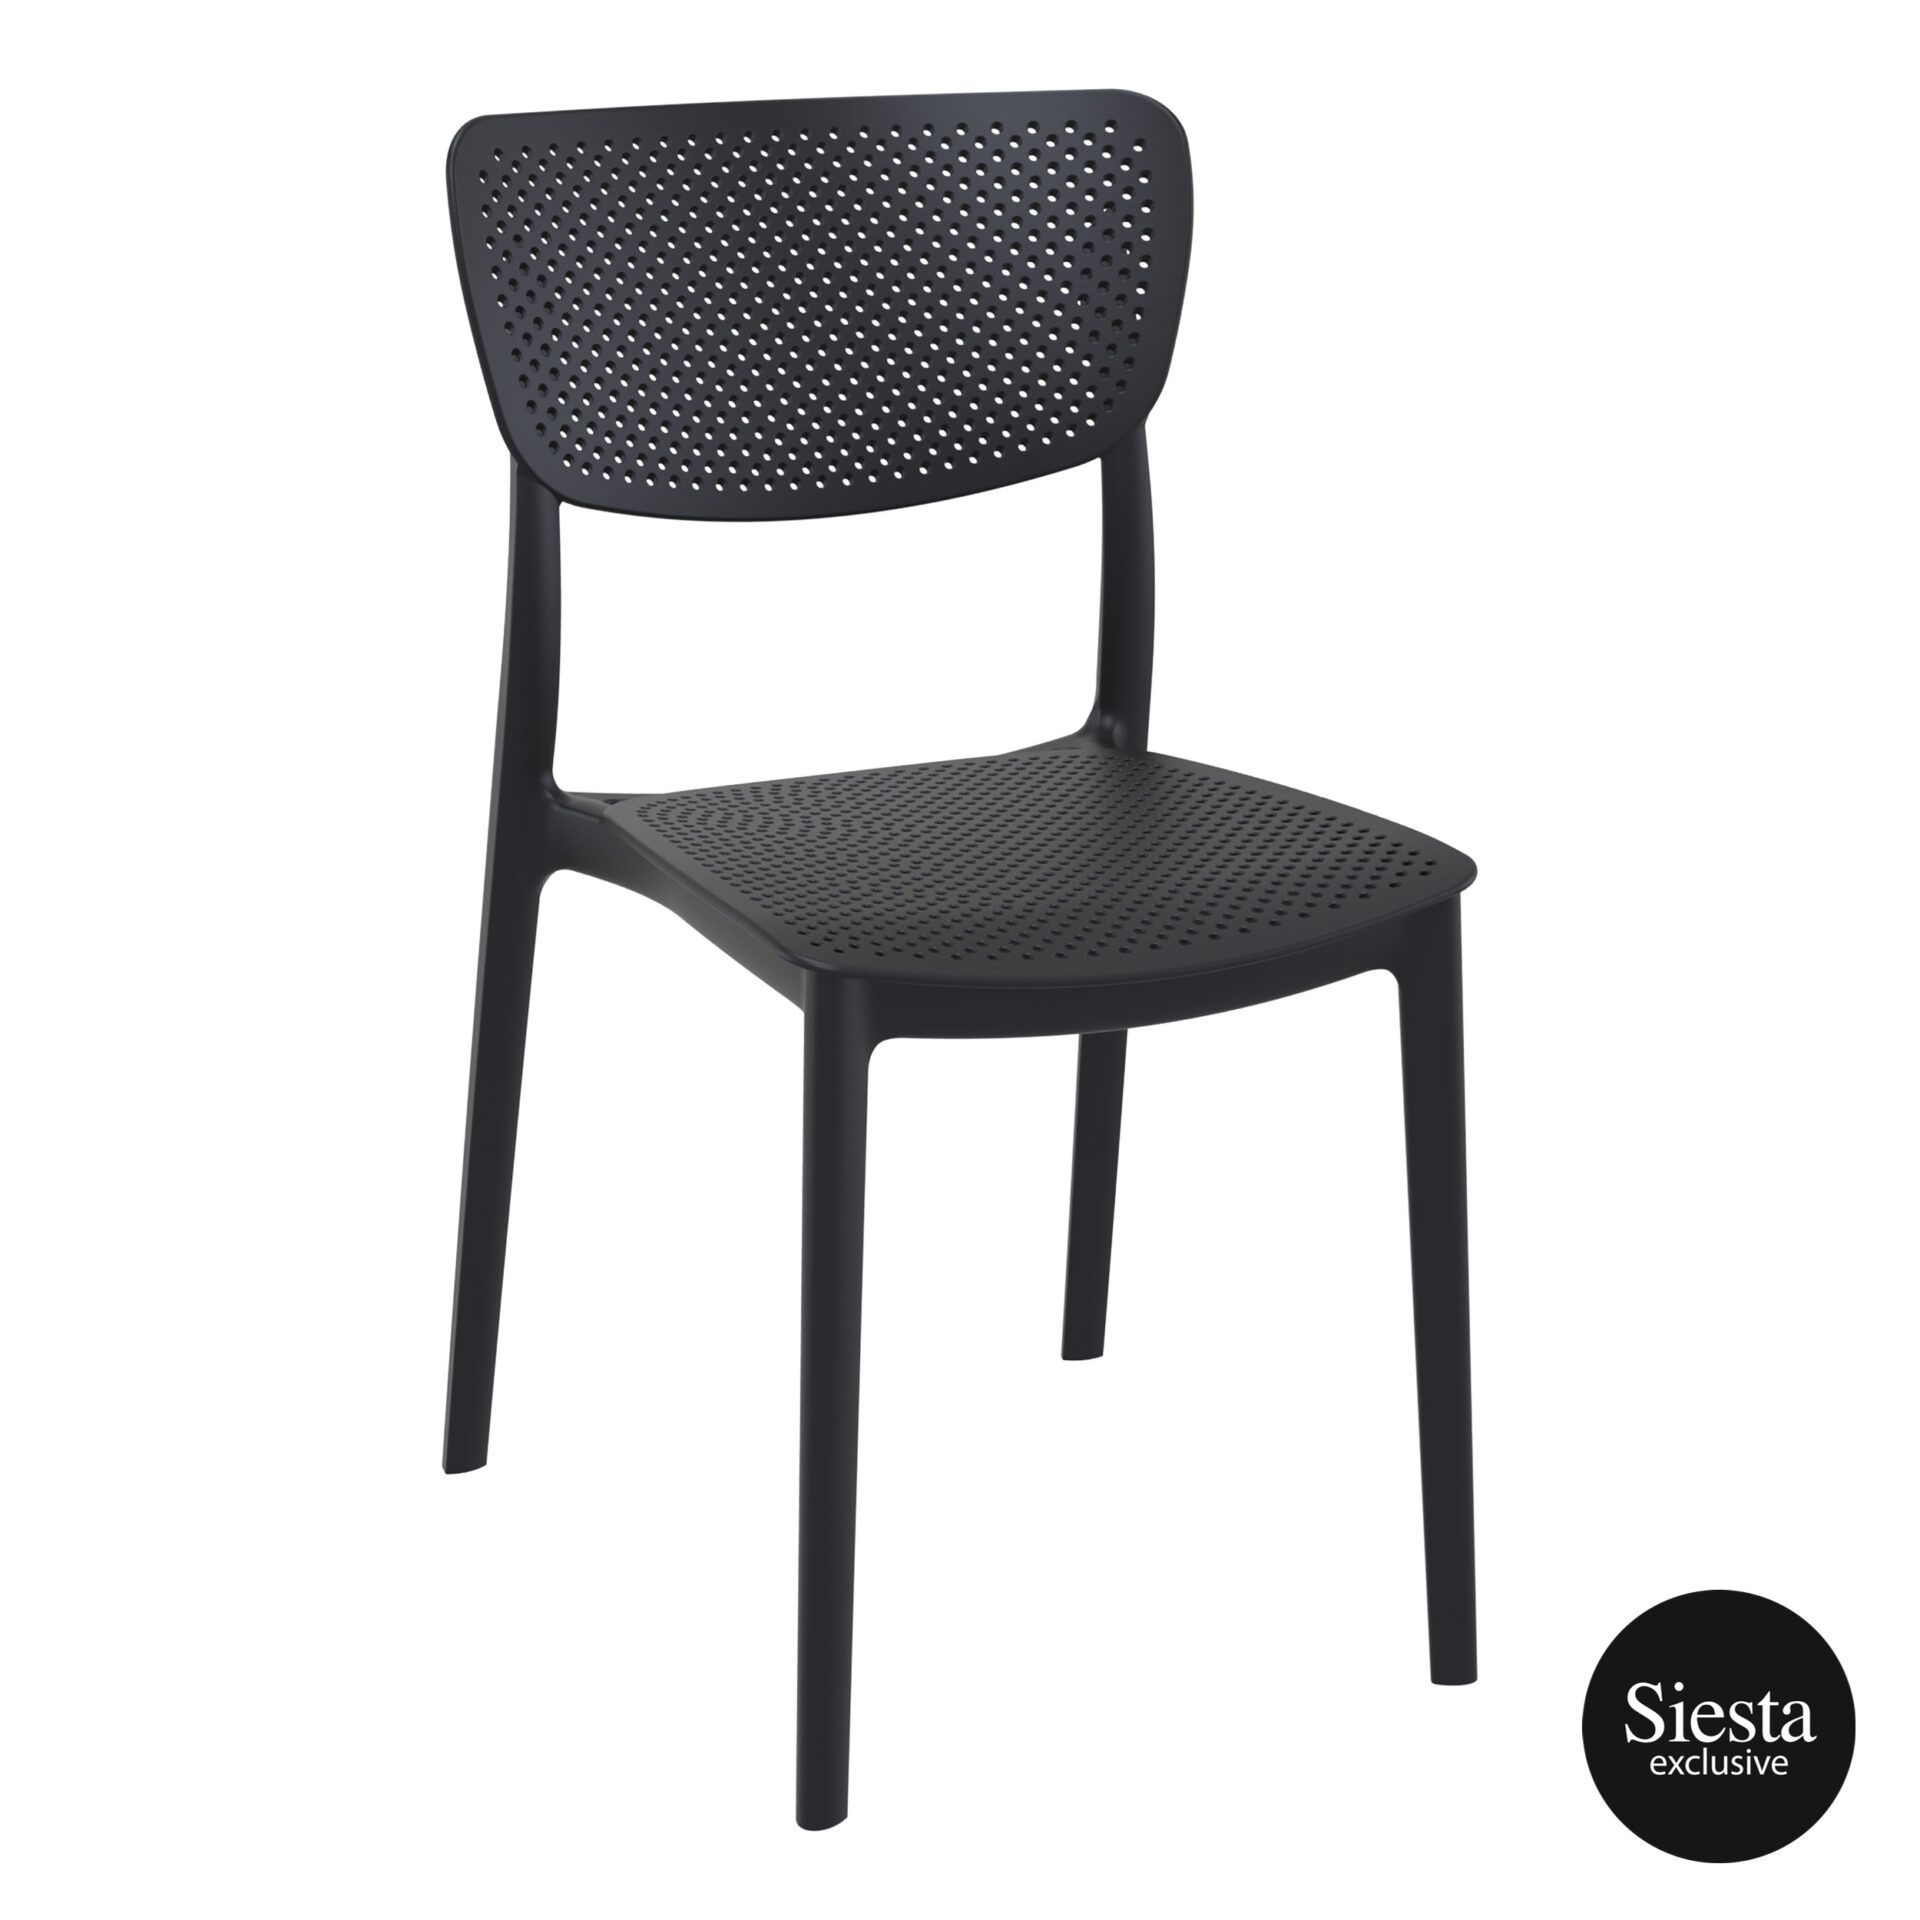 polypropylene hospitality seating lucy chair black front side 1